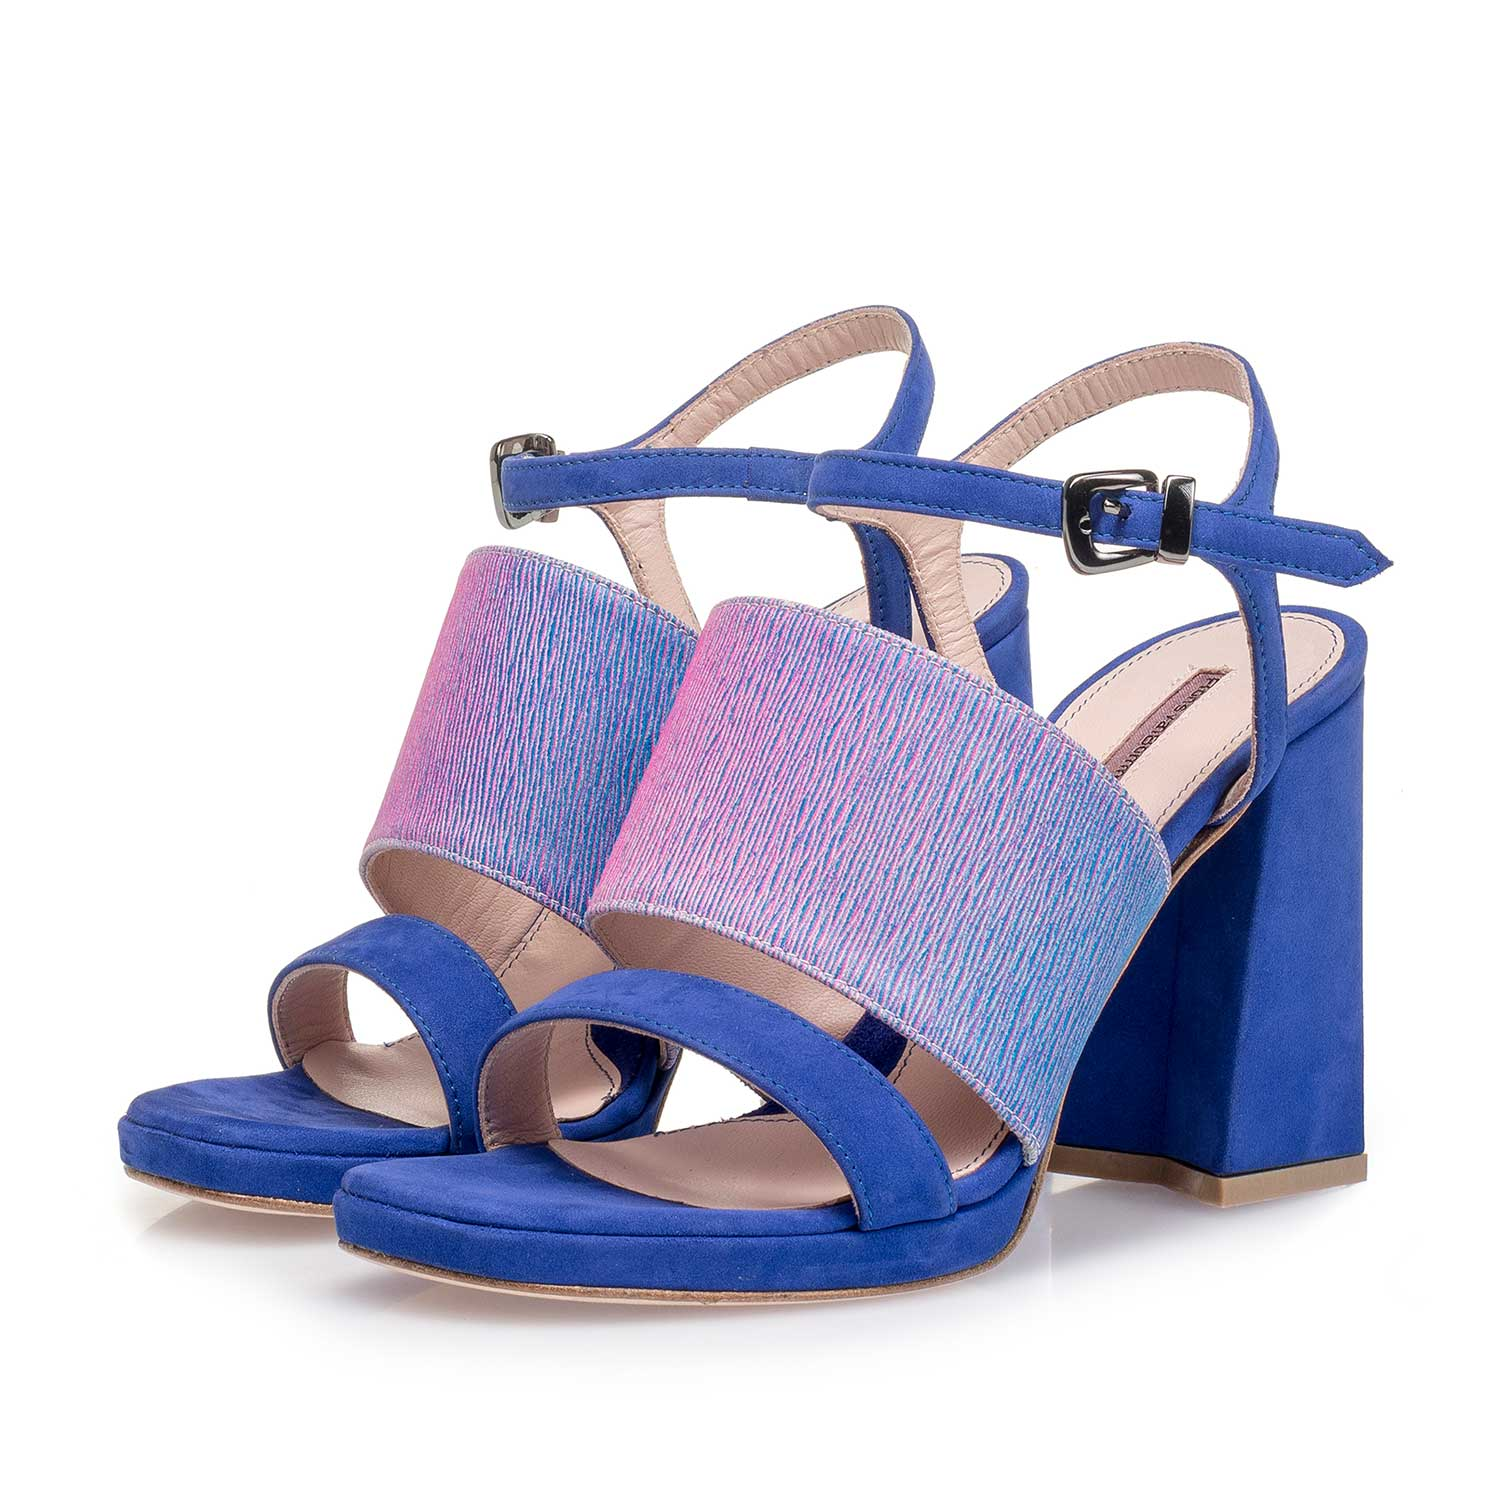 85900/01 - Blue high-heeled suede leather sandal with print